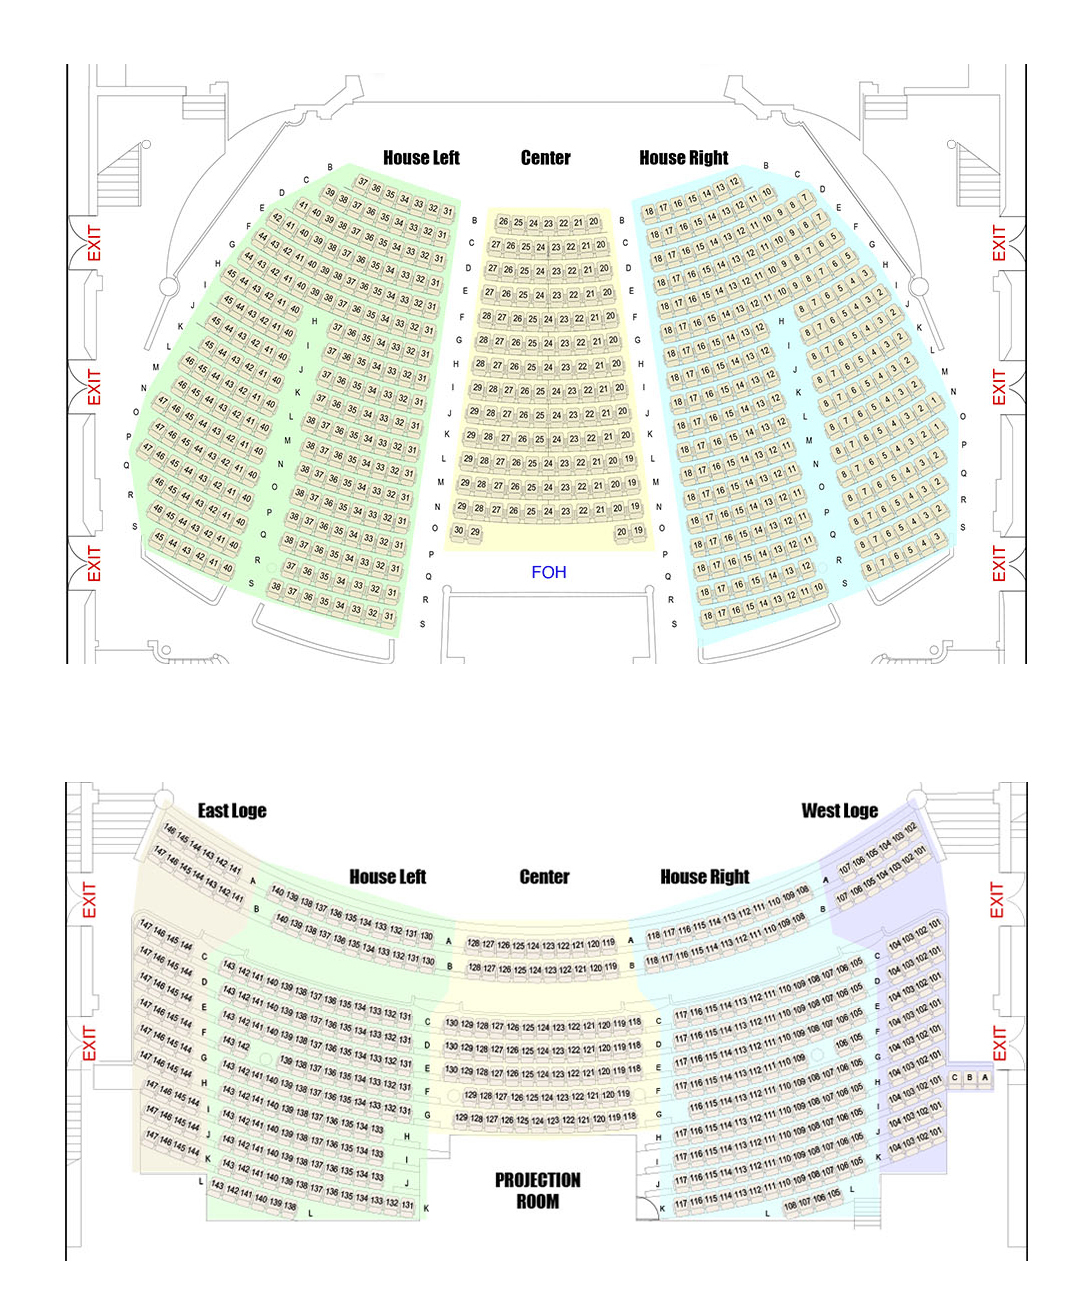 Downtown palace theatre los angeles tickets schedule seating